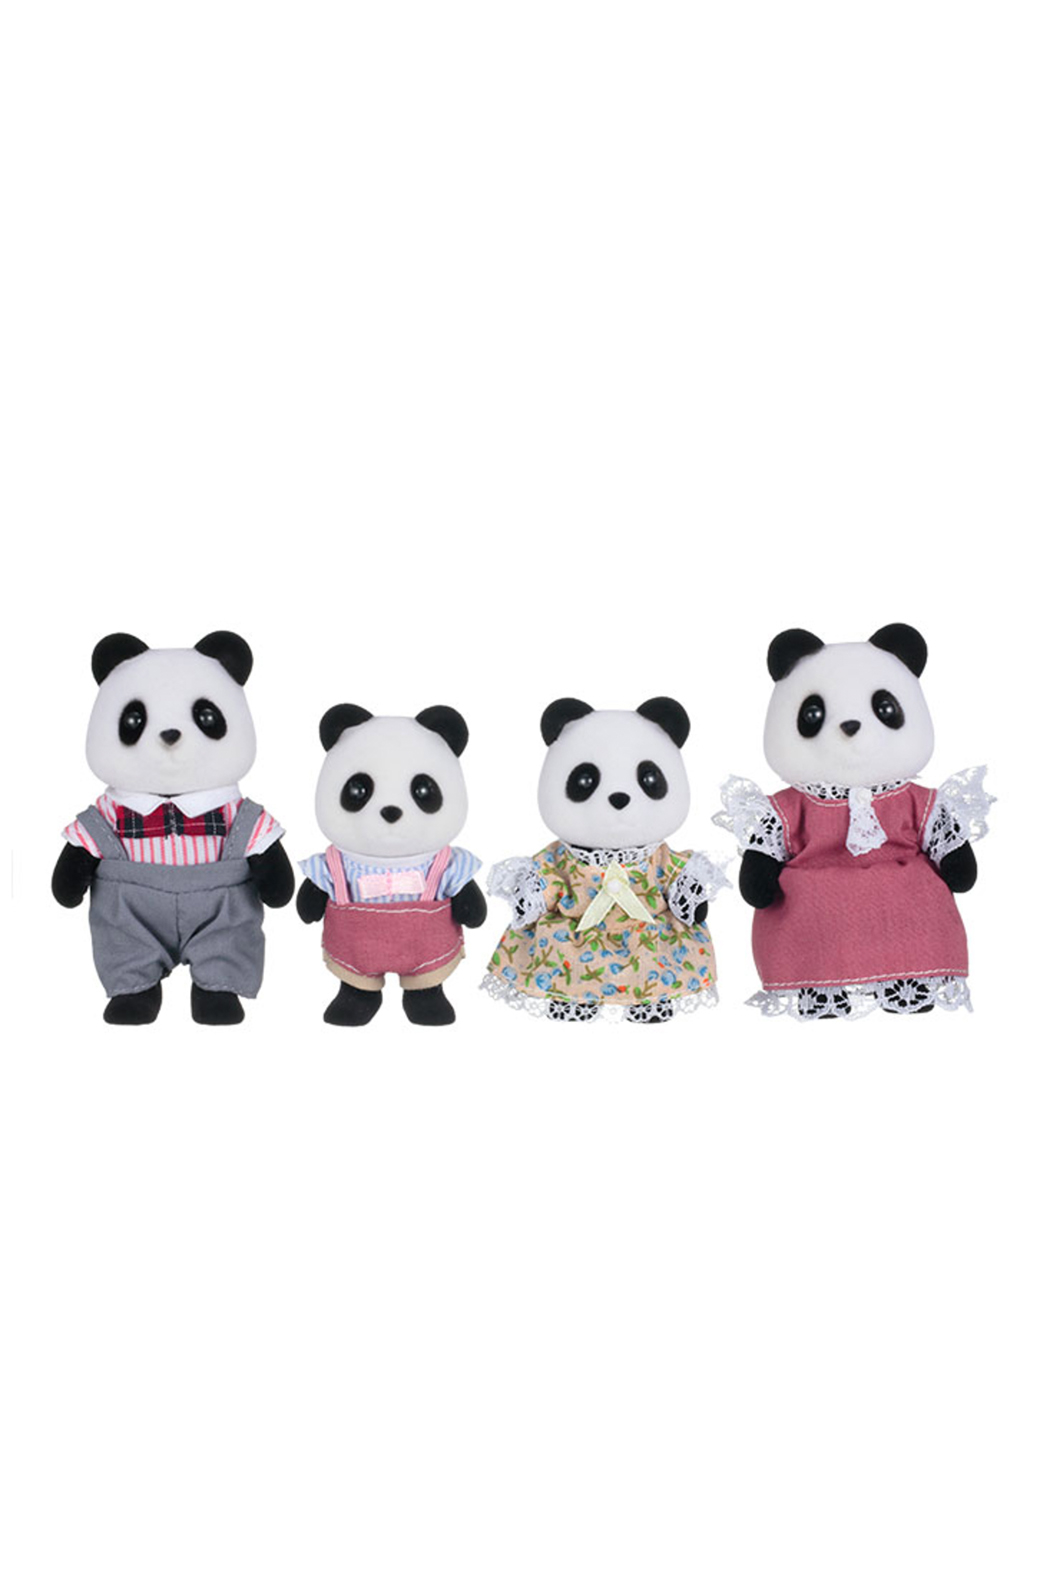 Calico Critters Wilder Panda Family - Main Image